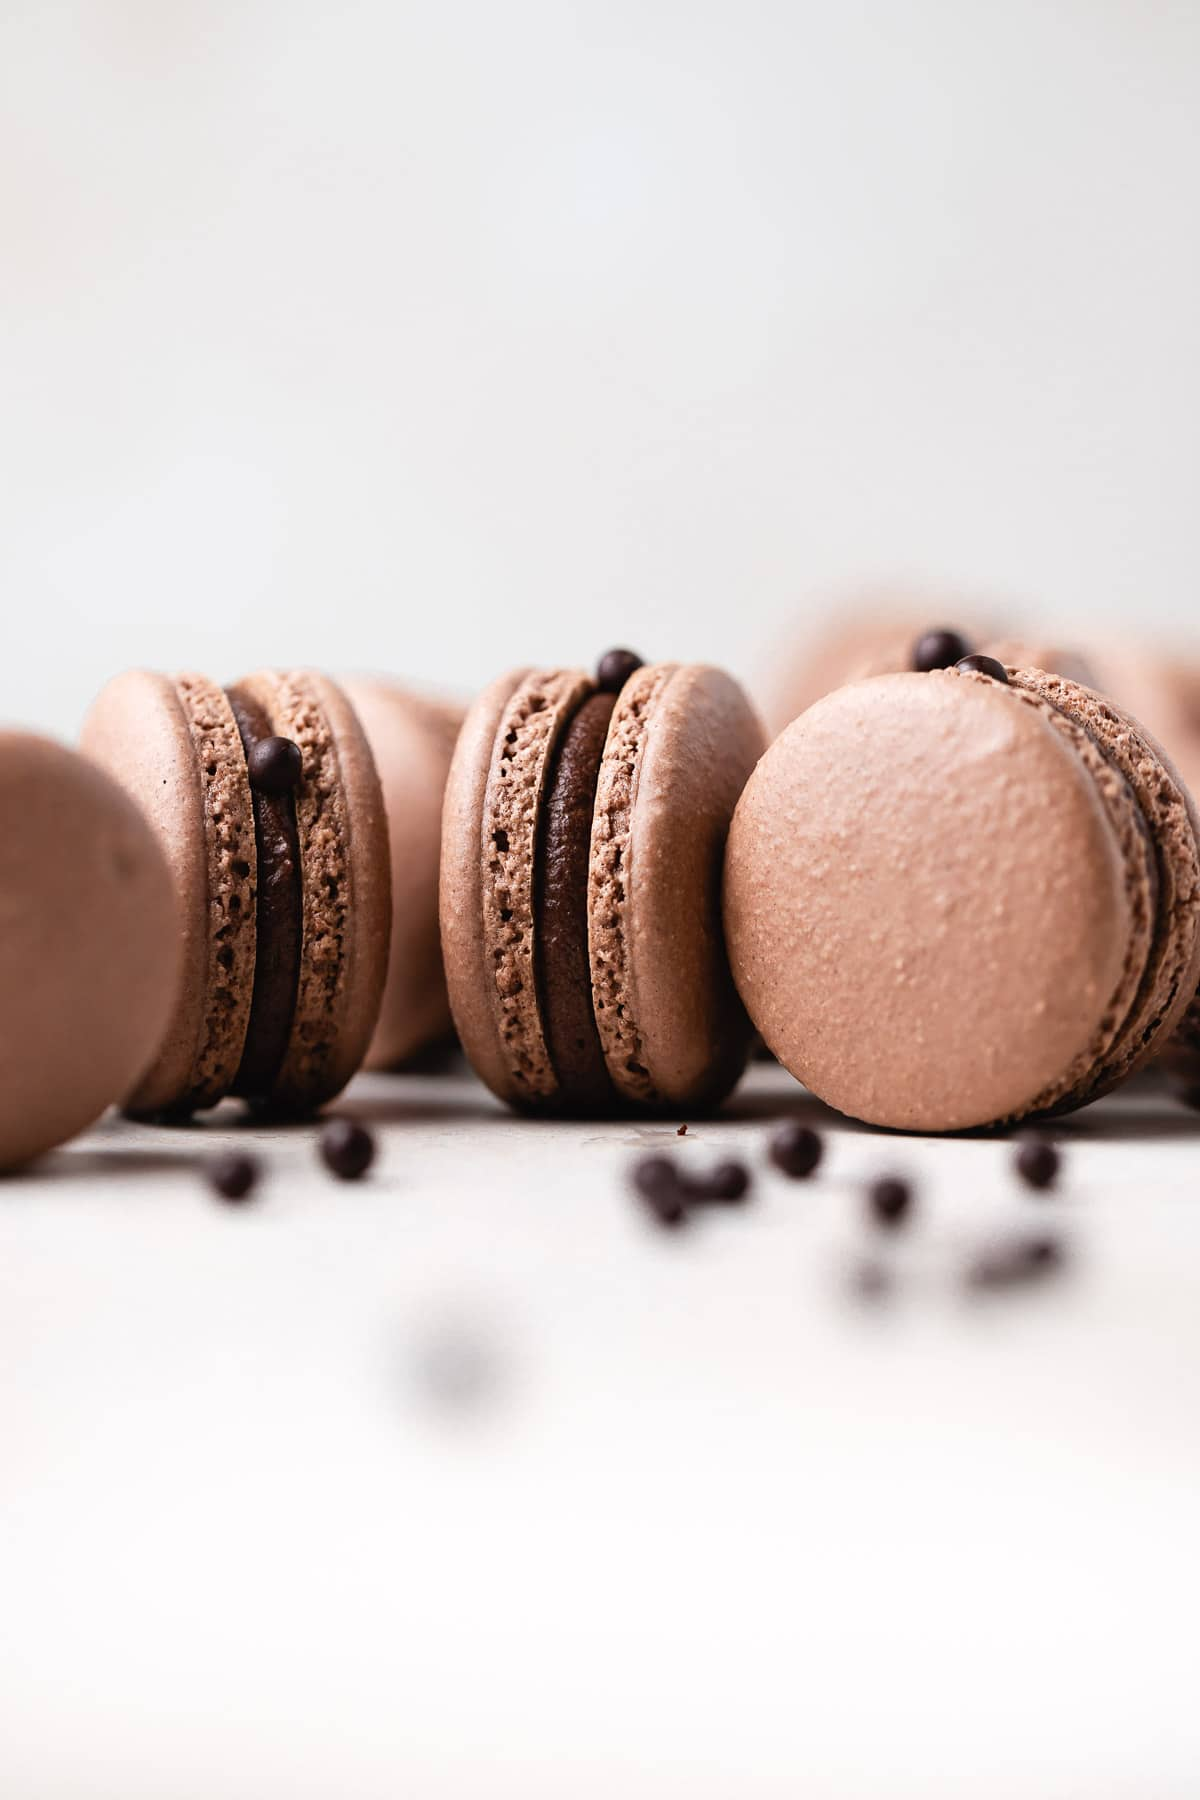 a few macarons sitting on their sides with milk balls around it